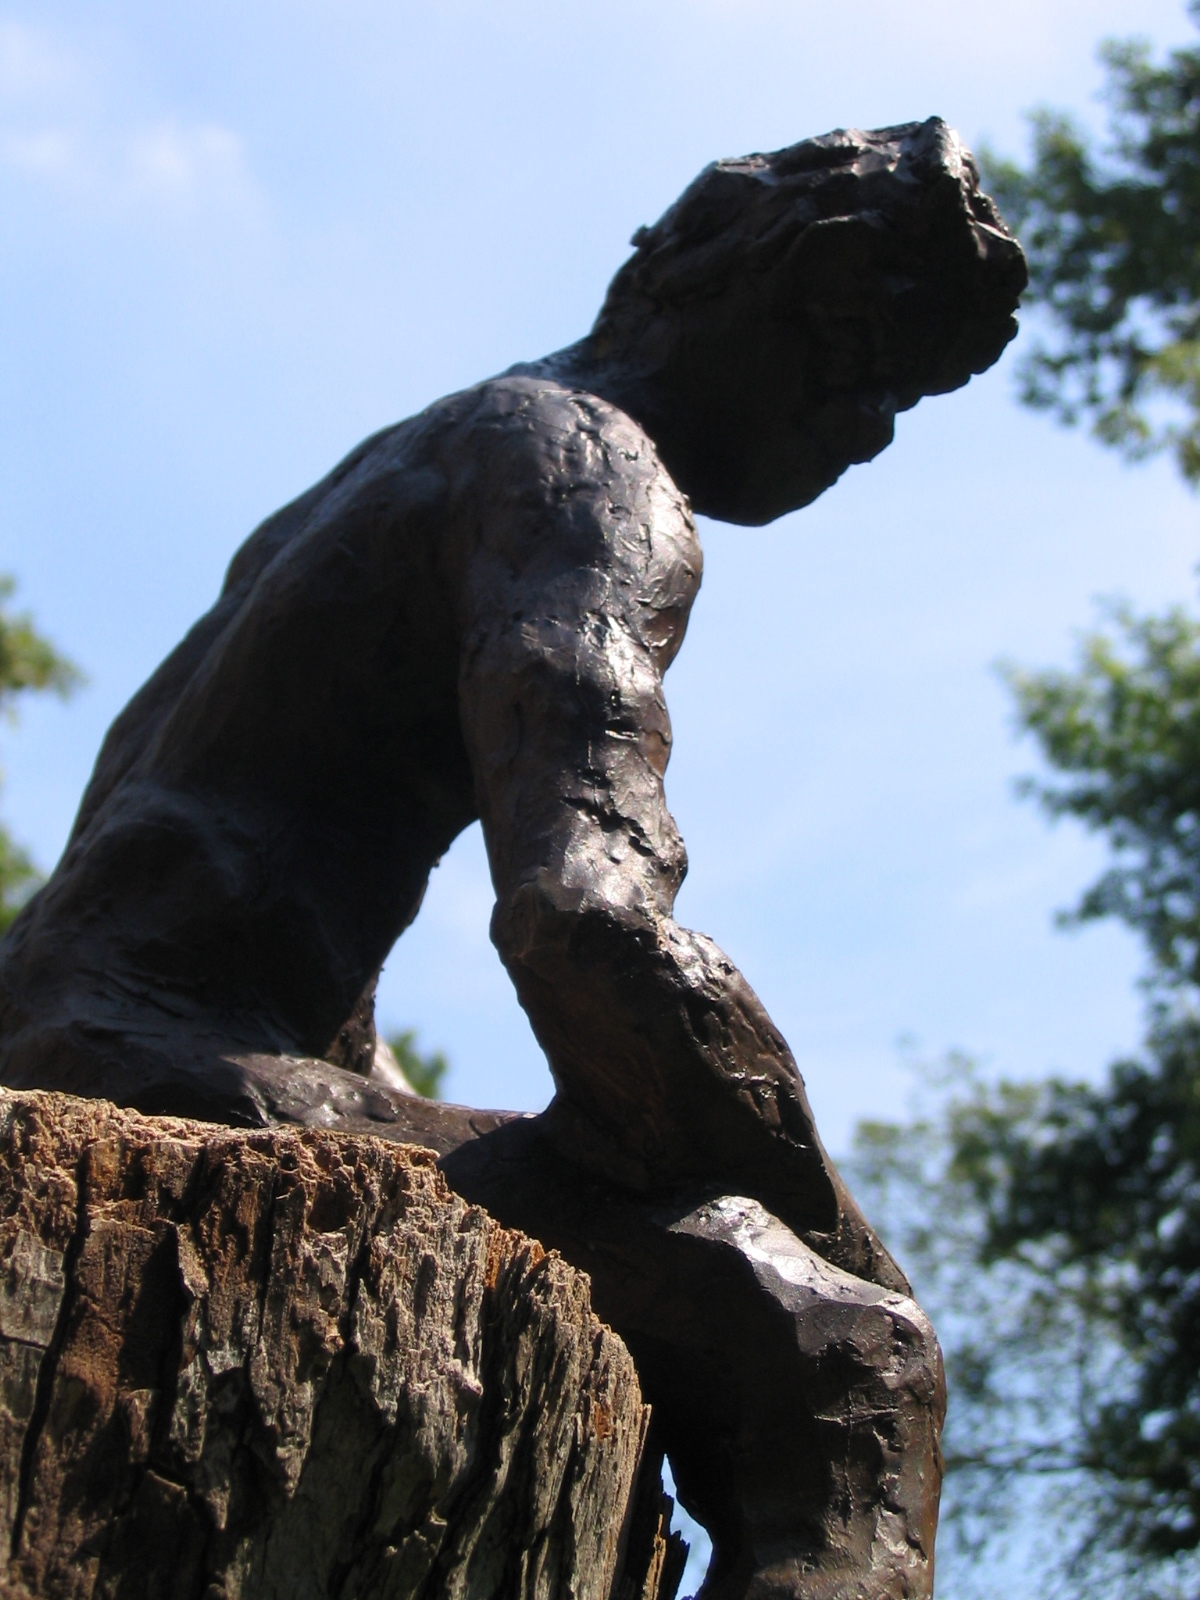 Sits Anywhere, 2004, 23 cm x 38 cm x 18 cm, Bronze